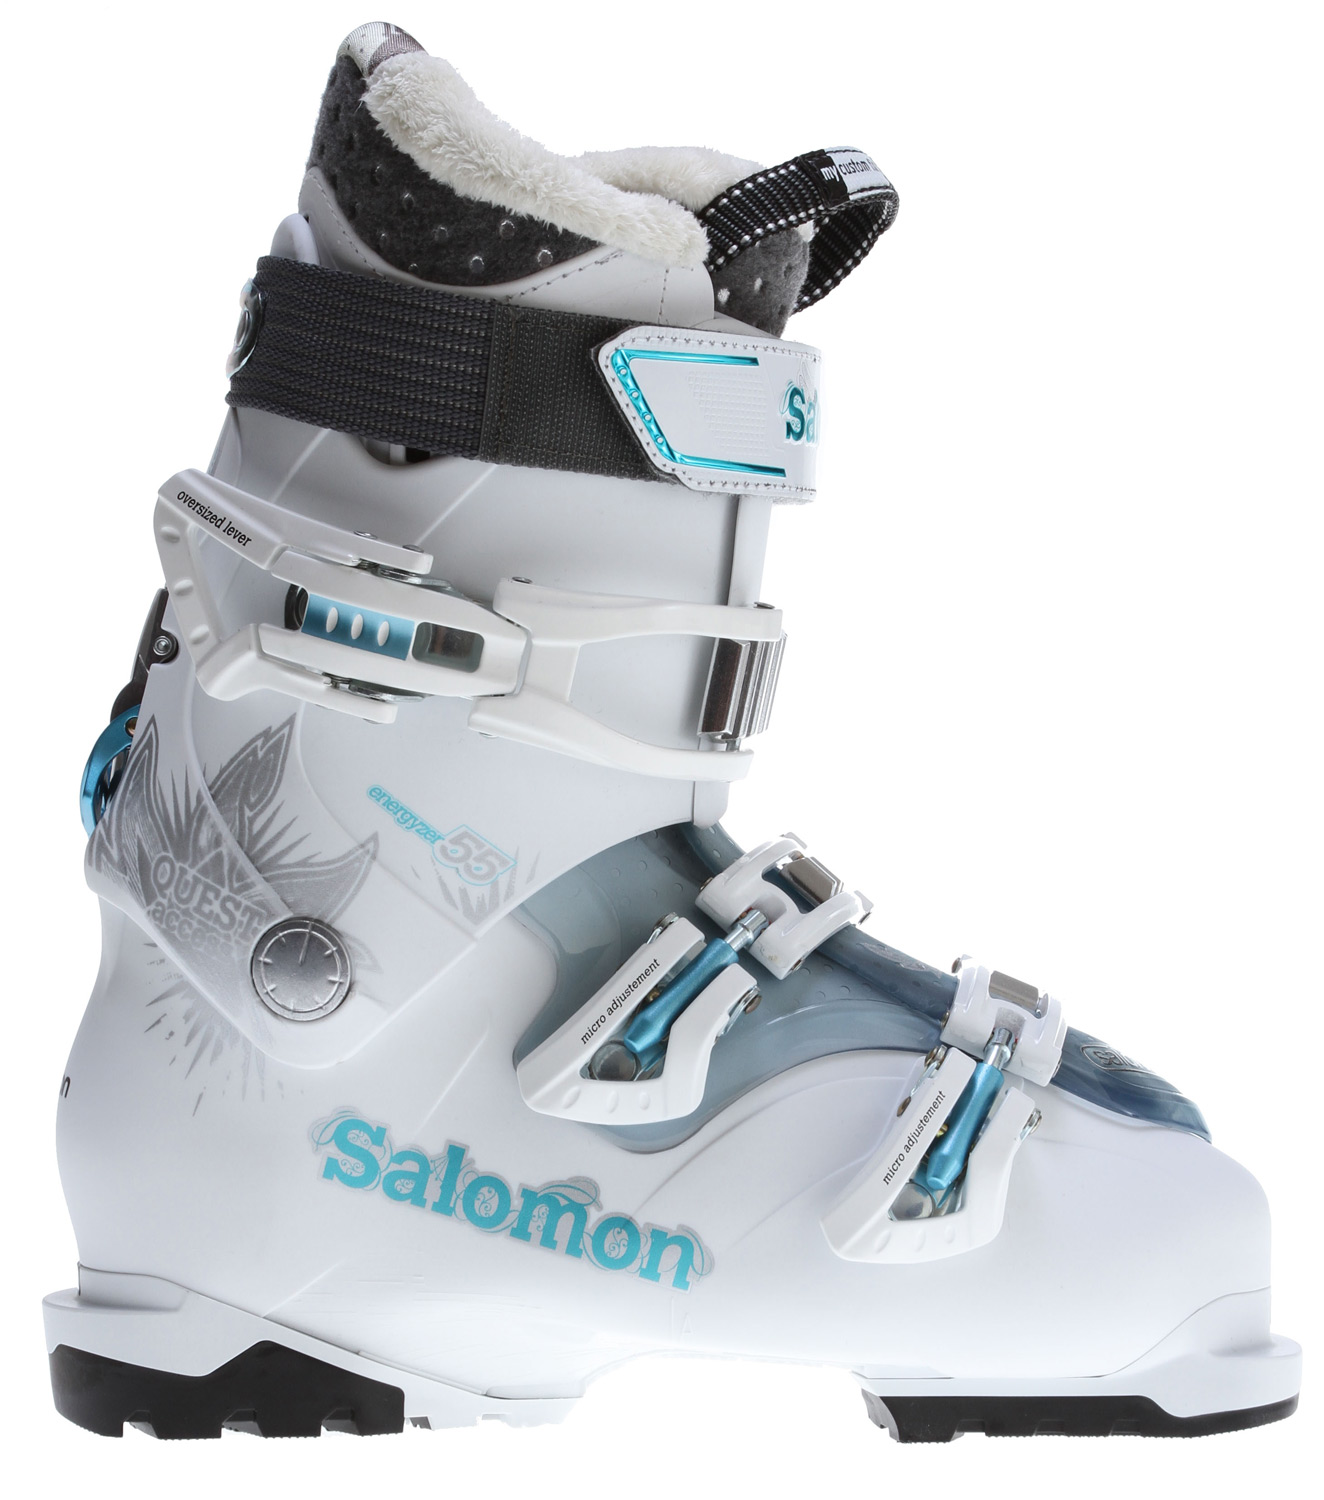 Ski The Salomon Quest Access 55 Ski Boots are for you ladies who need a performance boost. These boots are perfect for a weekend on the slopes, or an entire season of shredding madness if you so choose. They include ride and hike technology, as well as a custom fit comfort design making them one of the best boots on the market. Also included on the Quests are removable heel and toe DIN pads that ensure walking causes no discomfort. The Salomon Quest Access 55 Ski Boots are available in a variety of colors and styles, and best of all have a two year manufacturer's warranty.Key Features of the Salomon Quest Access 55 Ski Boots:  Ride and Hike Technology  My Custom Fit Comfort  Woolmetal  Backbone Release  Boot Board  Heel and Toe Removable DIN Pads  Women Specific Liner  Specific Women Cuff - $205.95